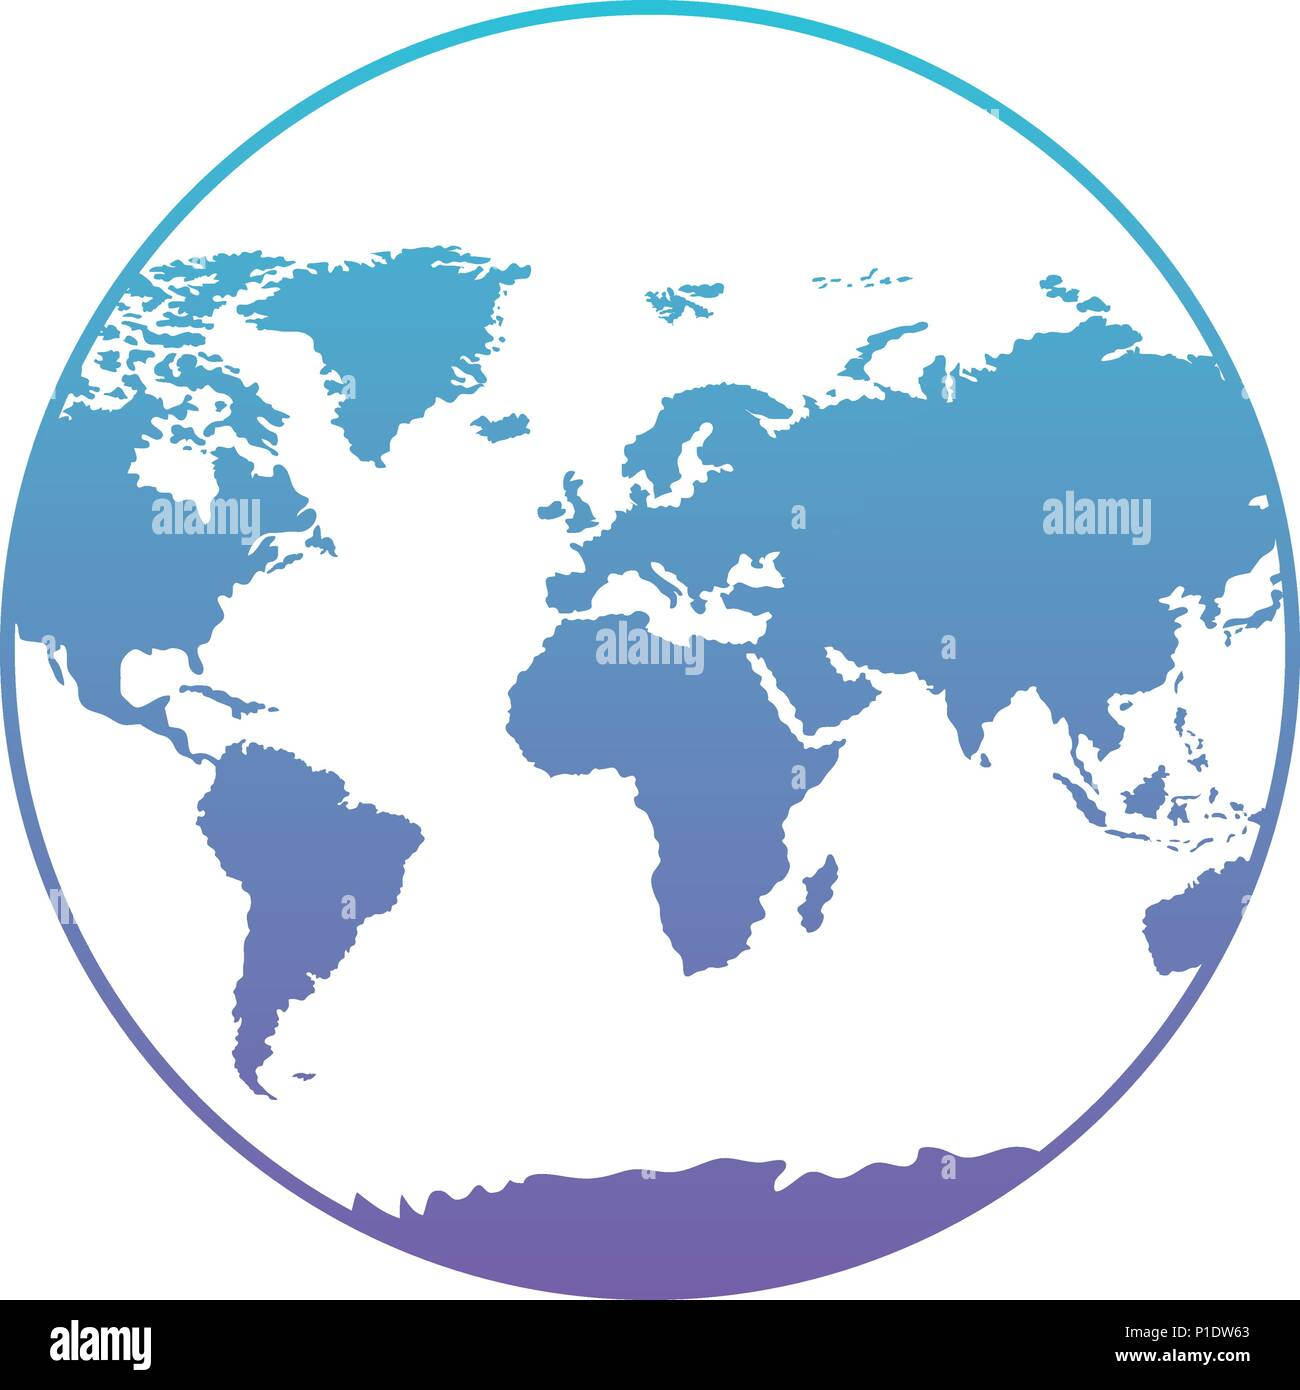 world planet earth icon - Stock Vector